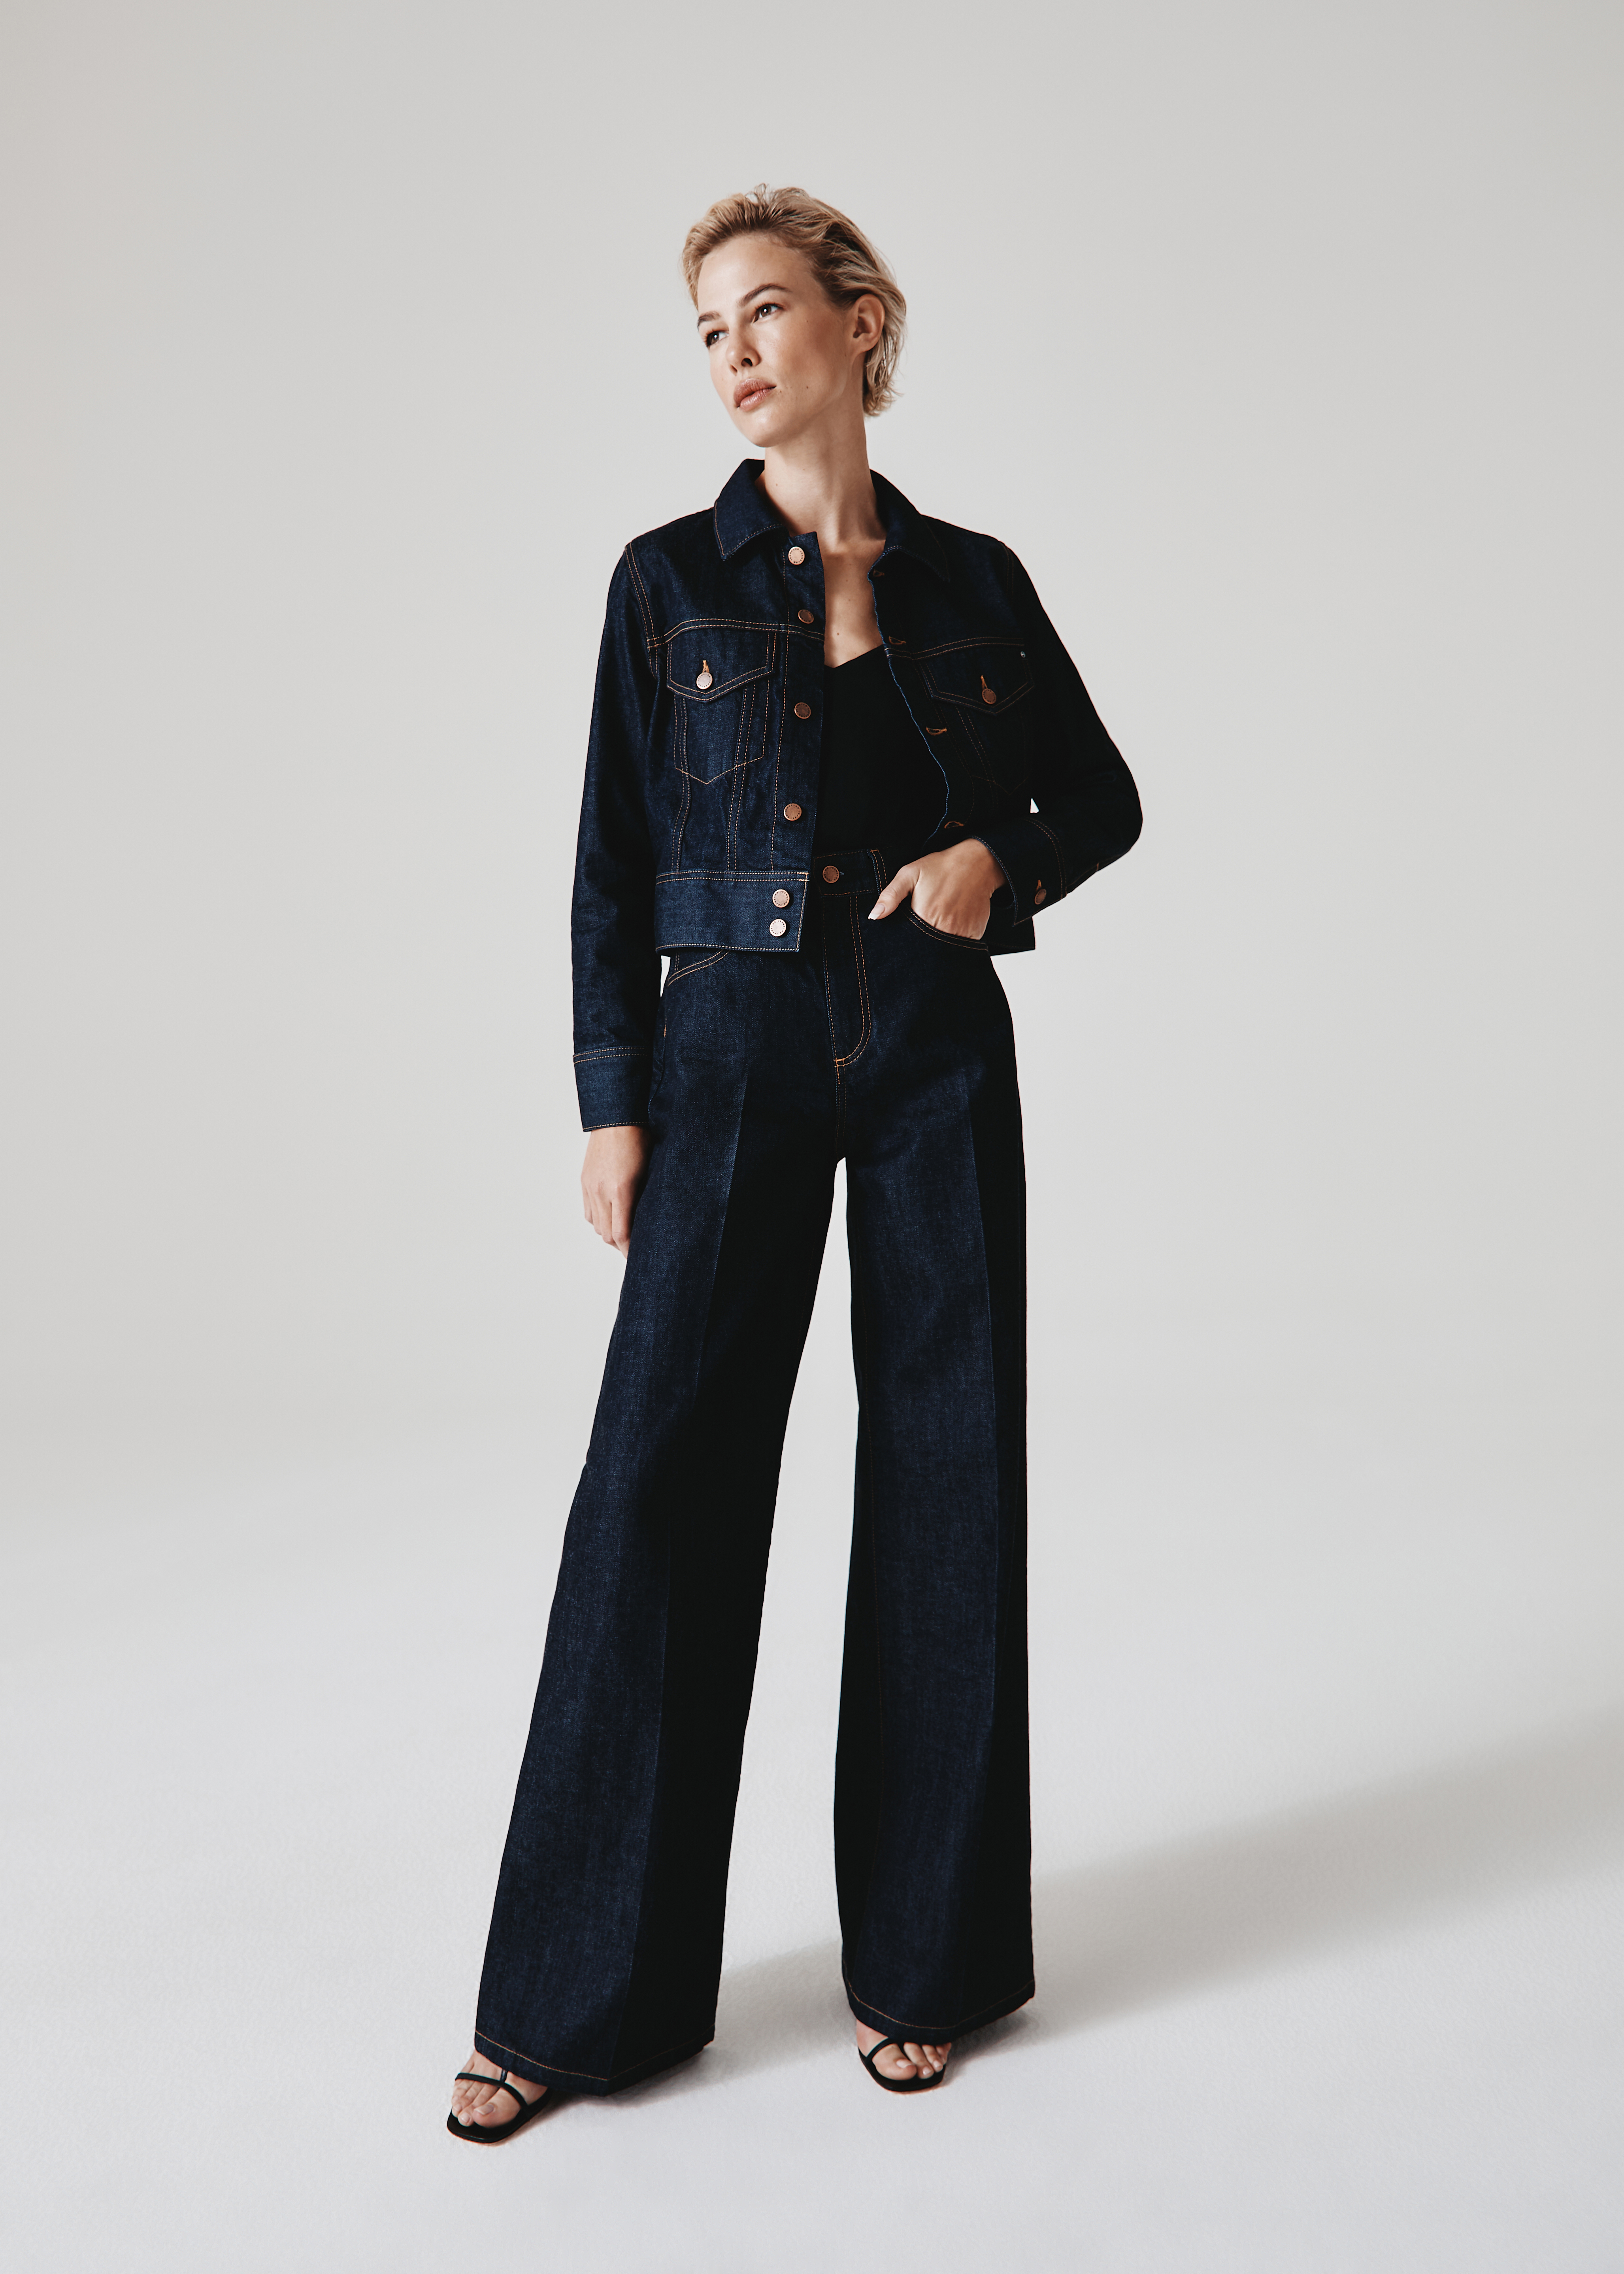 A tailored women's look from AG Jeans for fall.